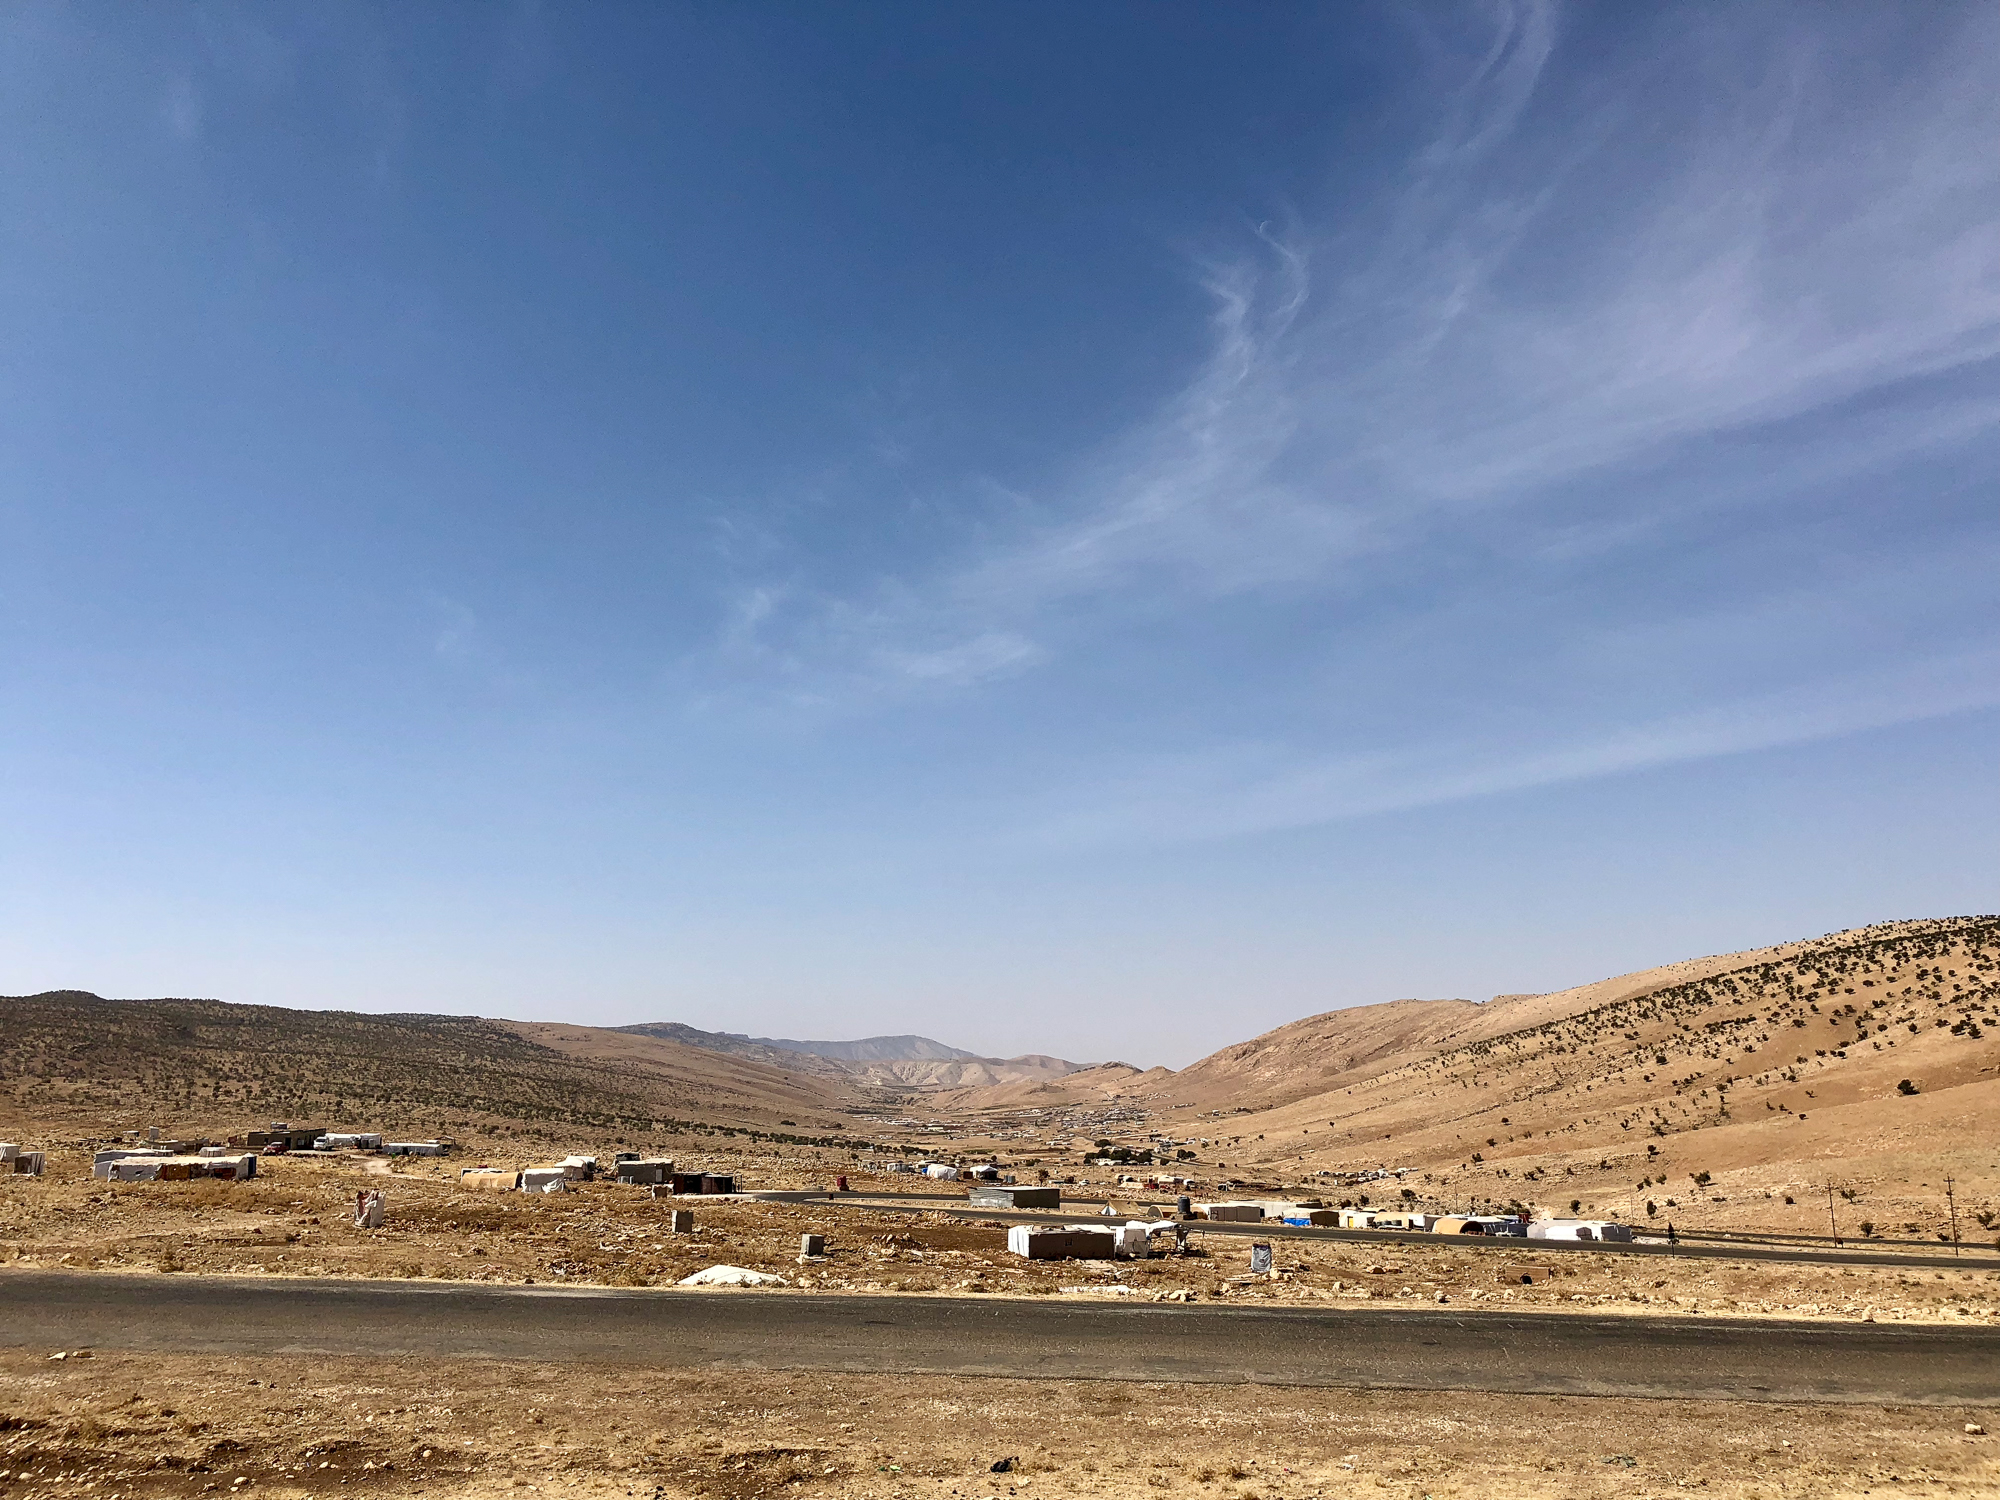 Above the Sinjar mount